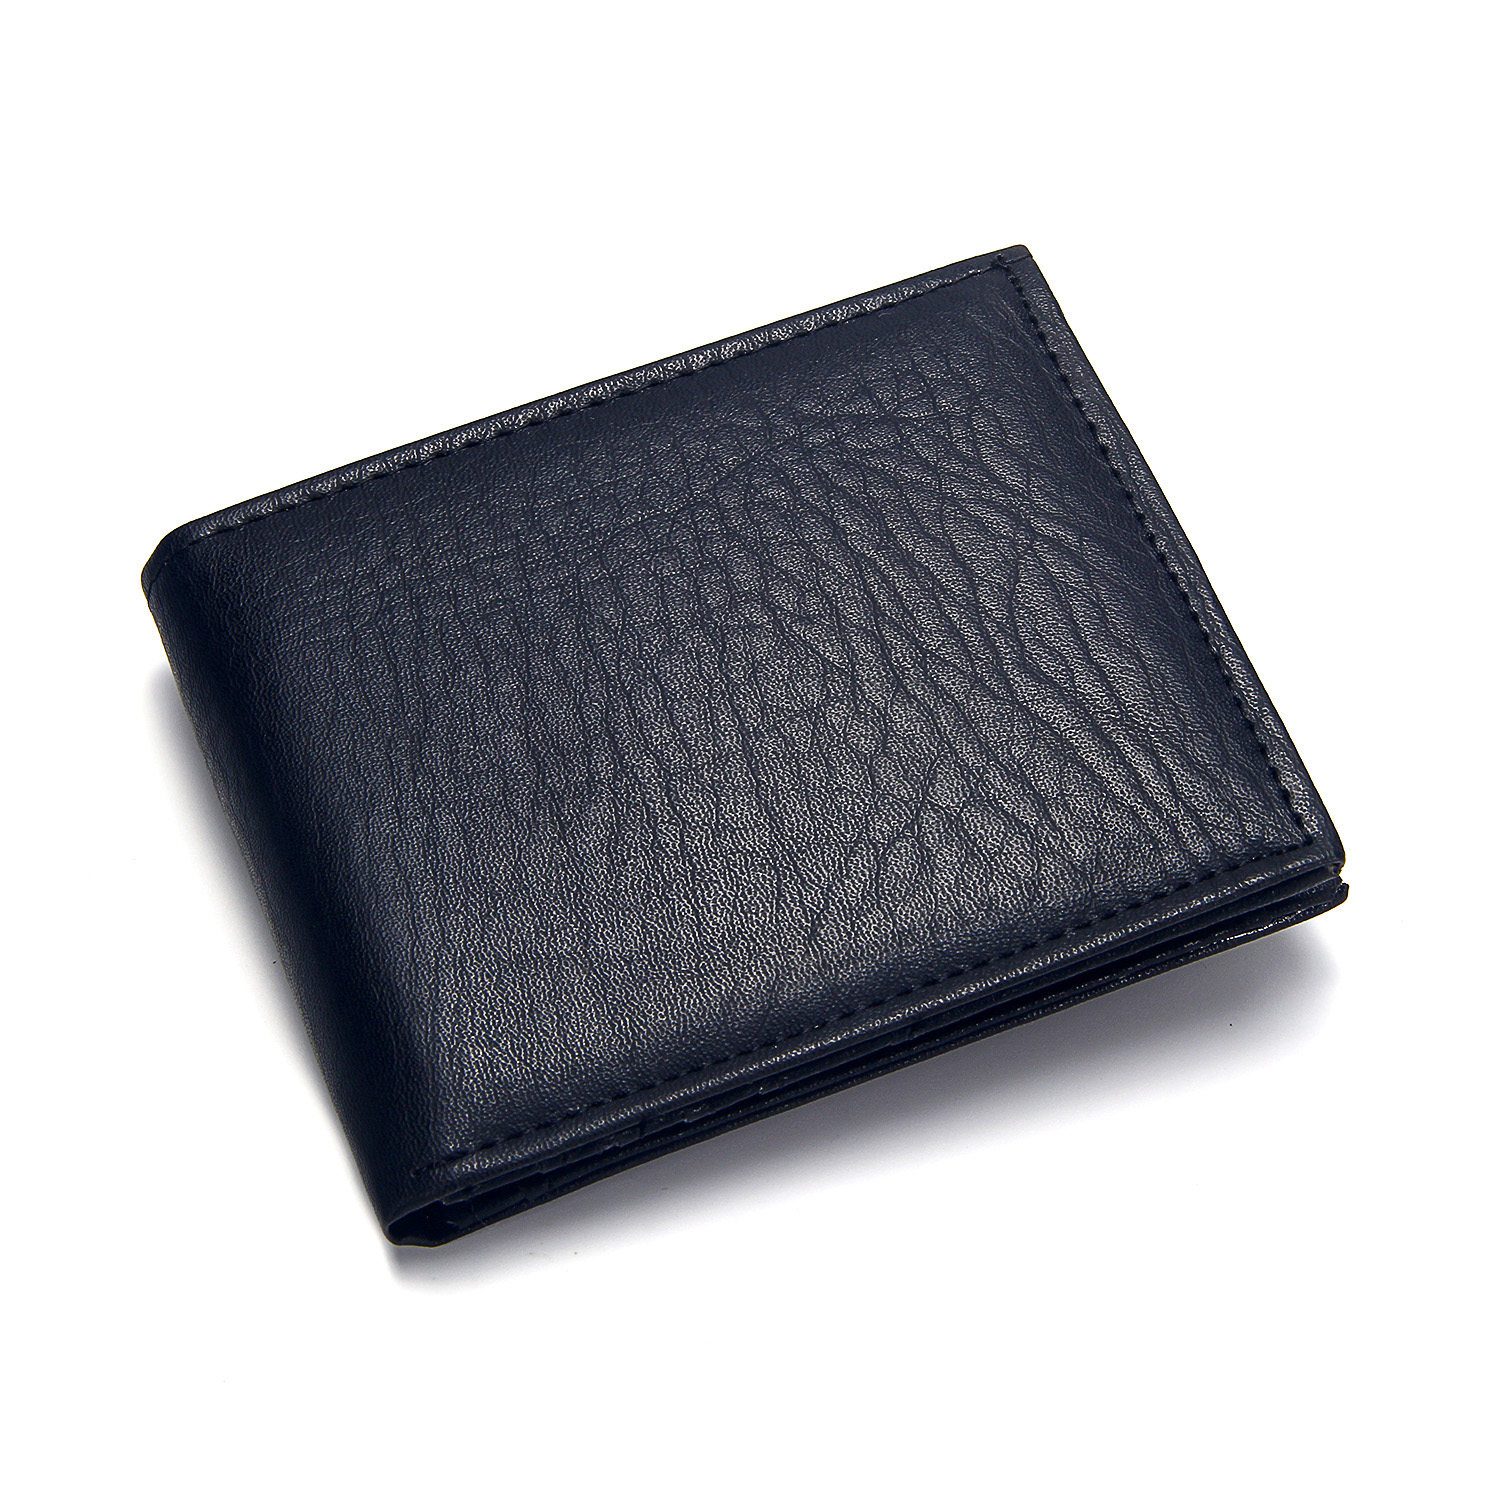 PU Leather Short Men's Wallet Black Credit Card Holder Coffee Causal Small Wallets For Male Snap Button Pocket Coin Purse